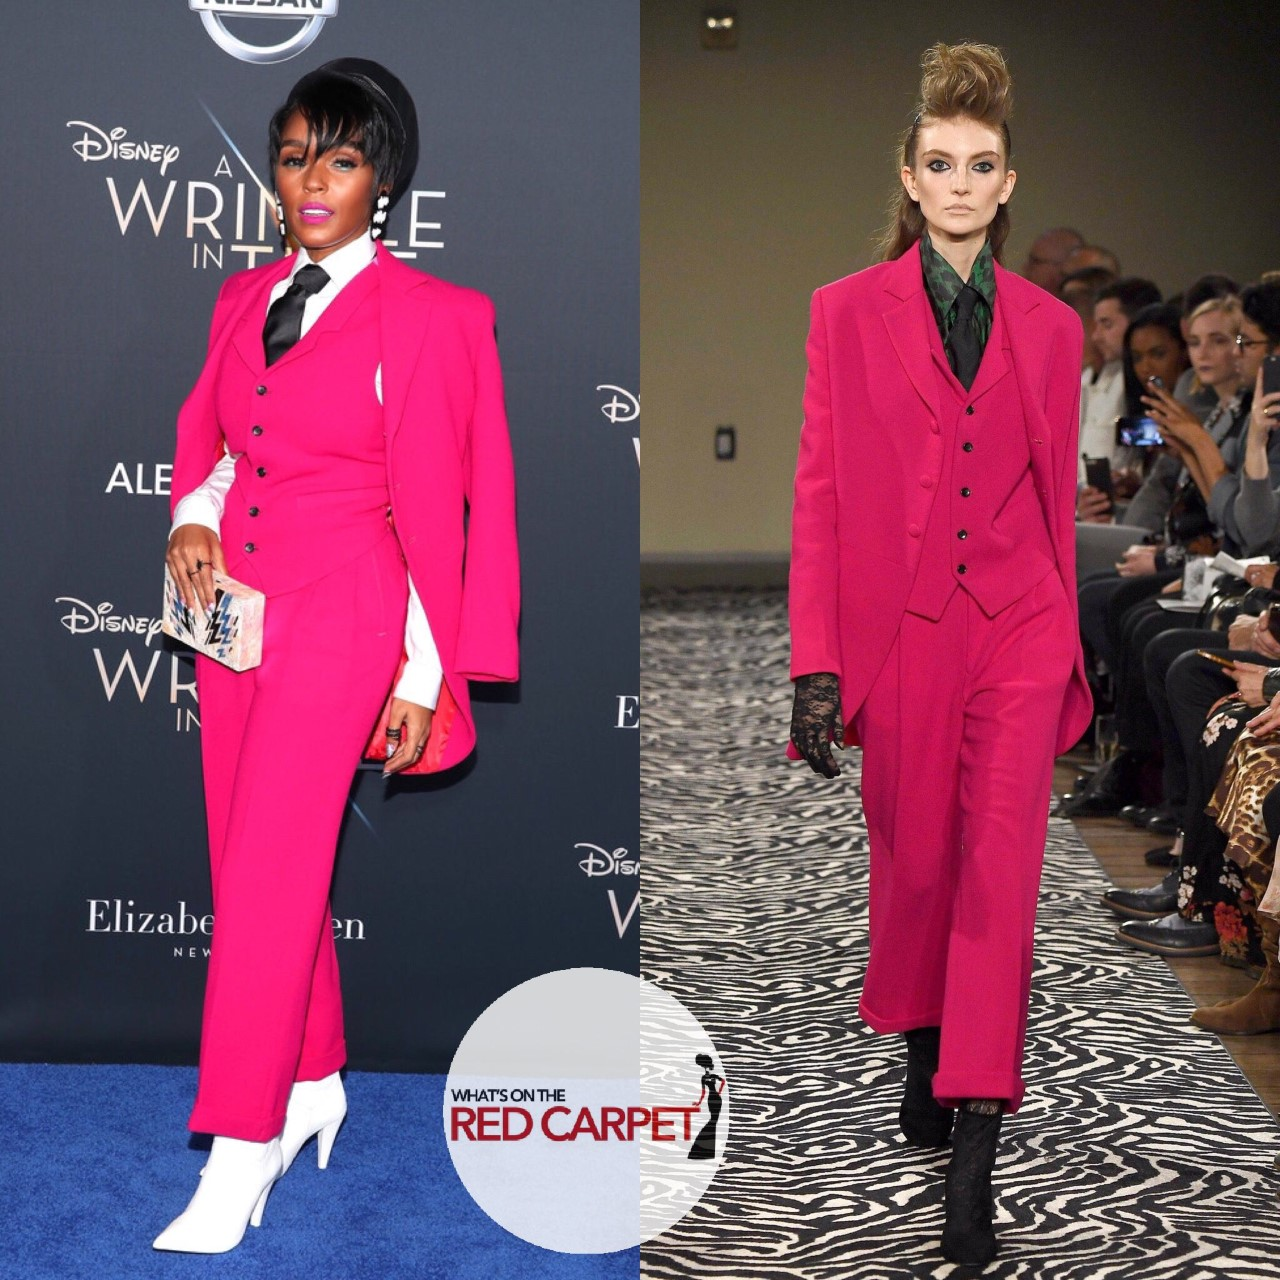 Janelle Monae Wolk Morais A Wrinkle in Time Los Angeles Premiere Fashion Style